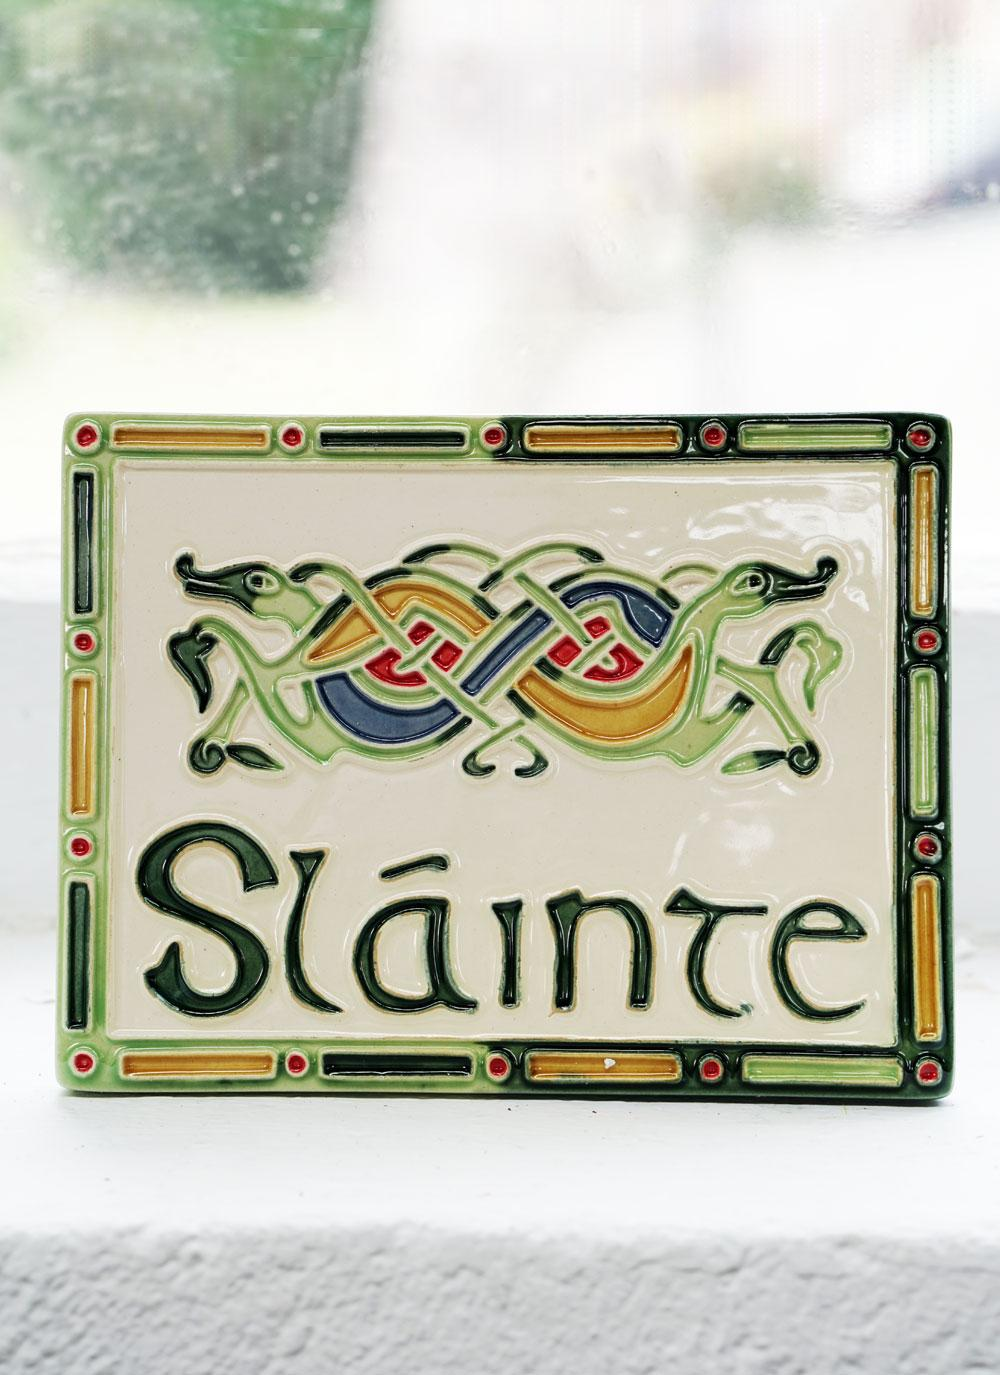 Sláinte (trans. Good Health) Ceramic Wall Plaque - Kells Range US